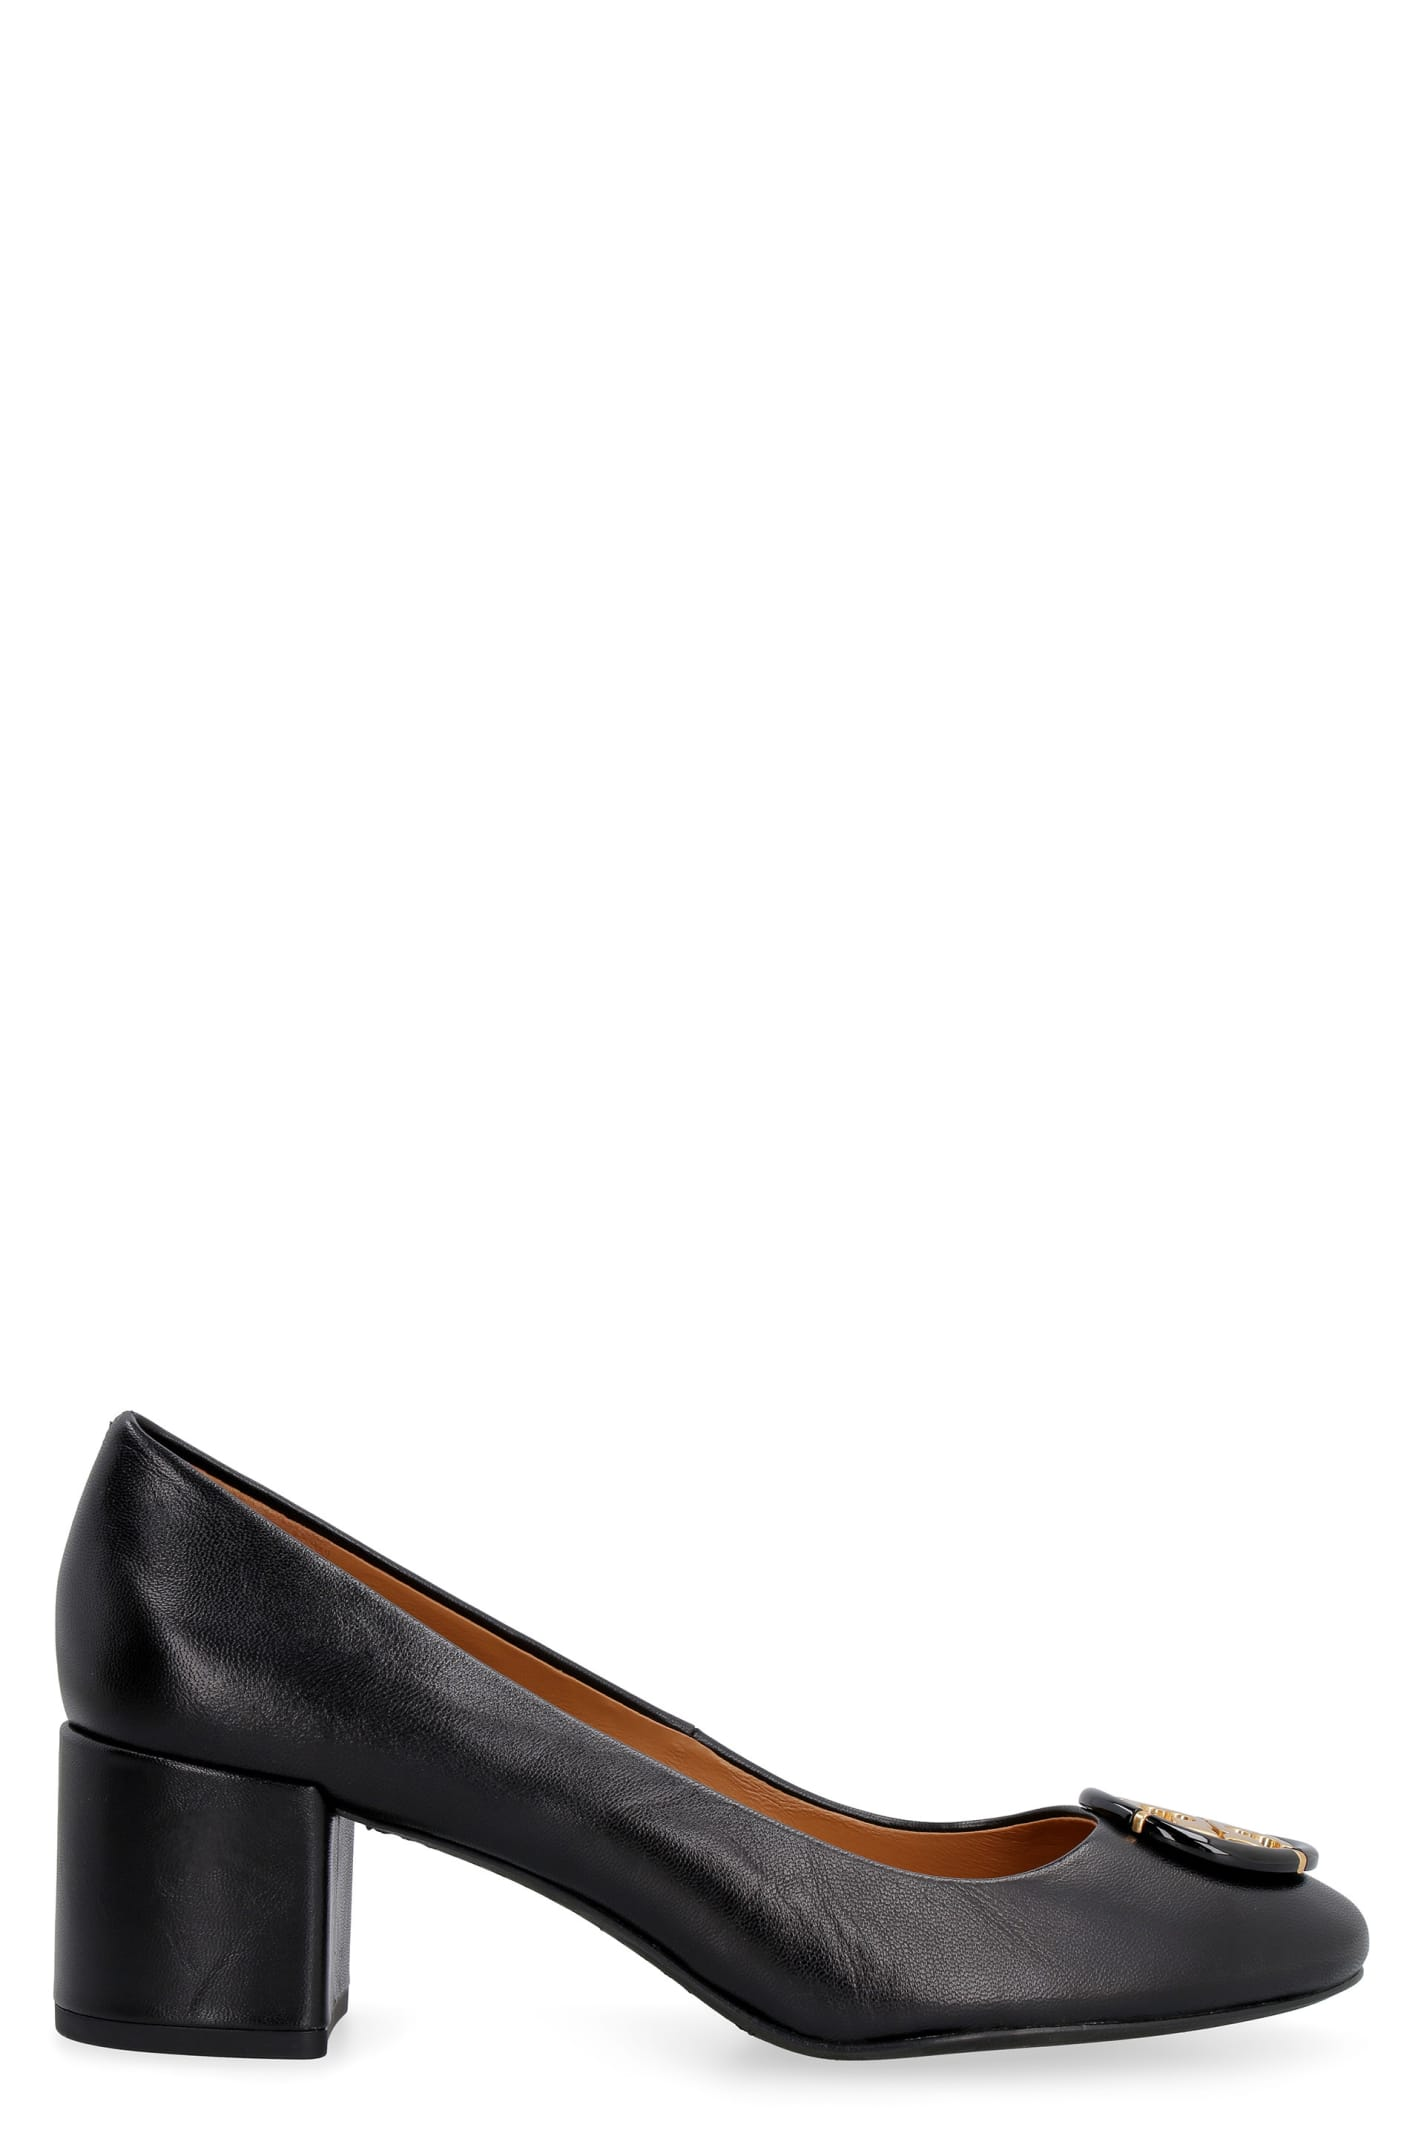 Buy Tory Burch Leather Pumps online, shop Tory Burch shoes with free shipping